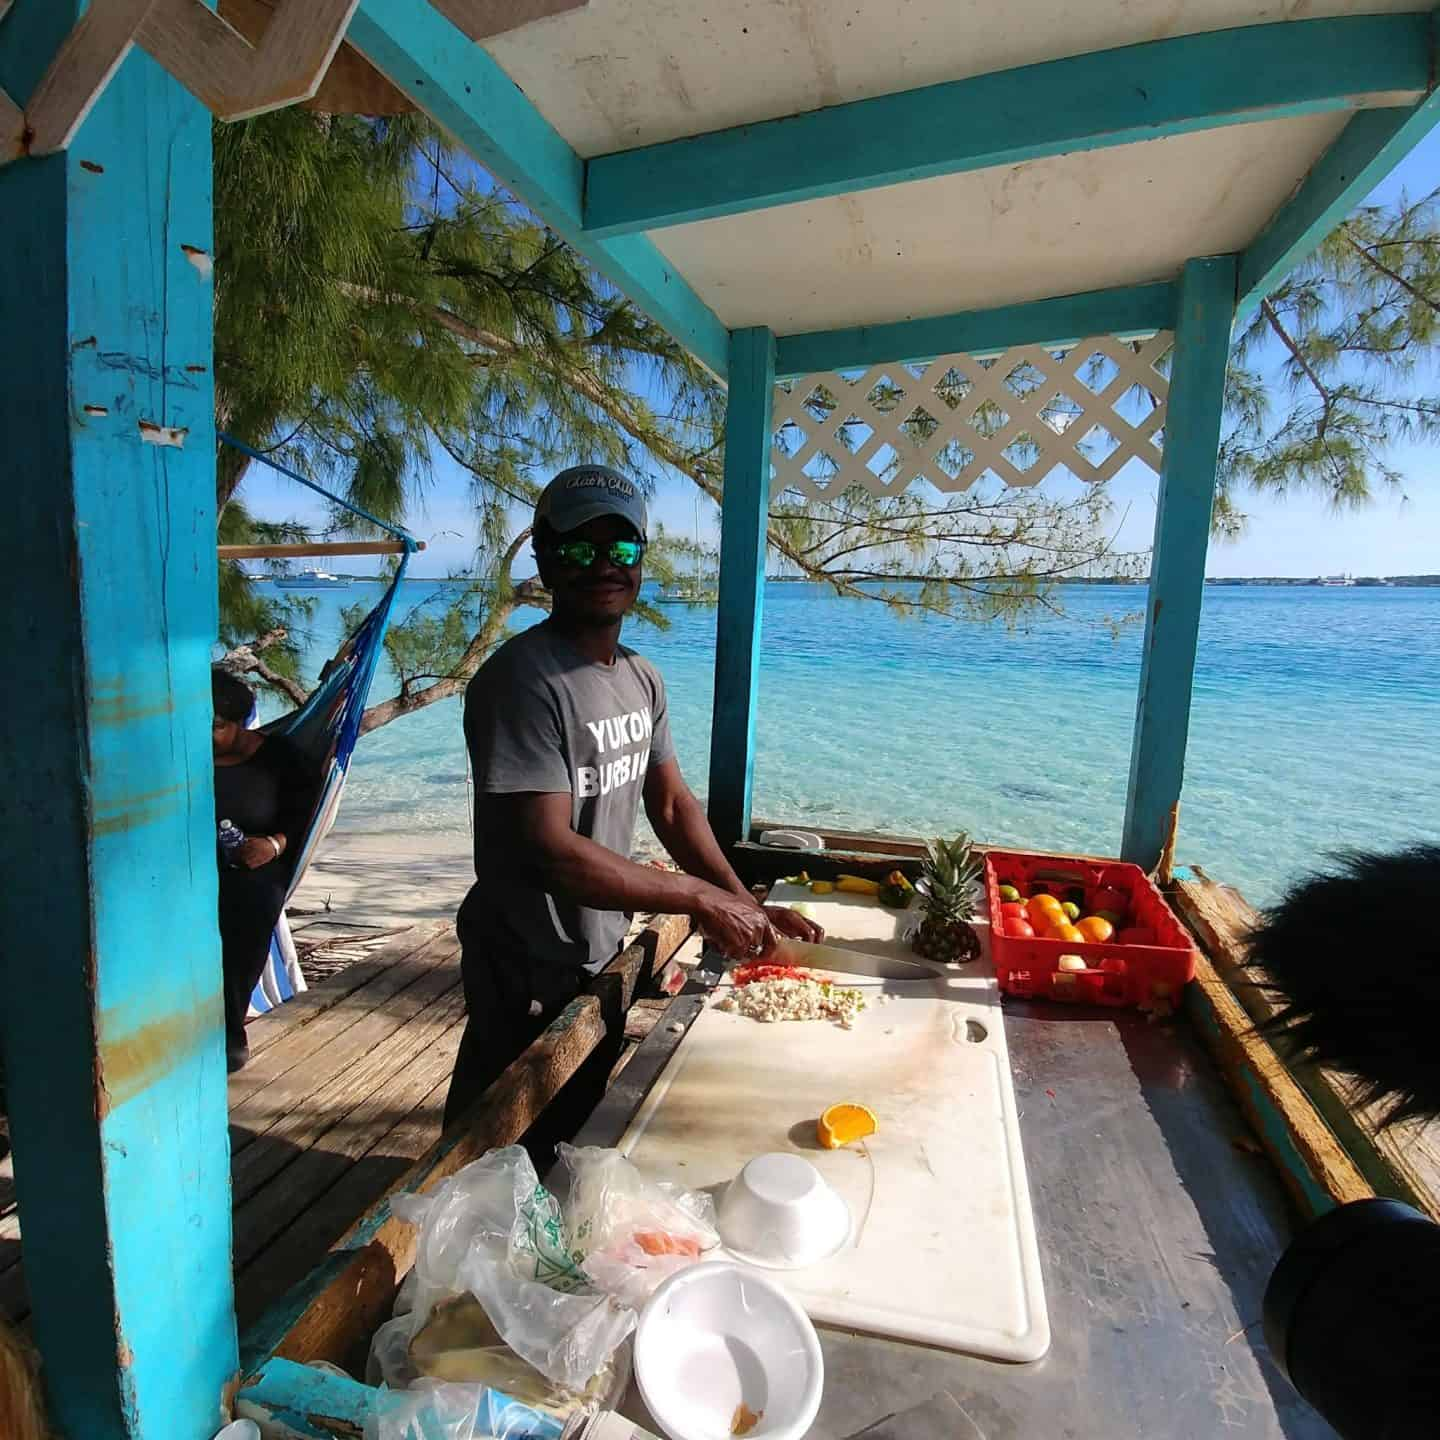 Travel Guide to The Exumas Bahamas Fresh conch made on beach